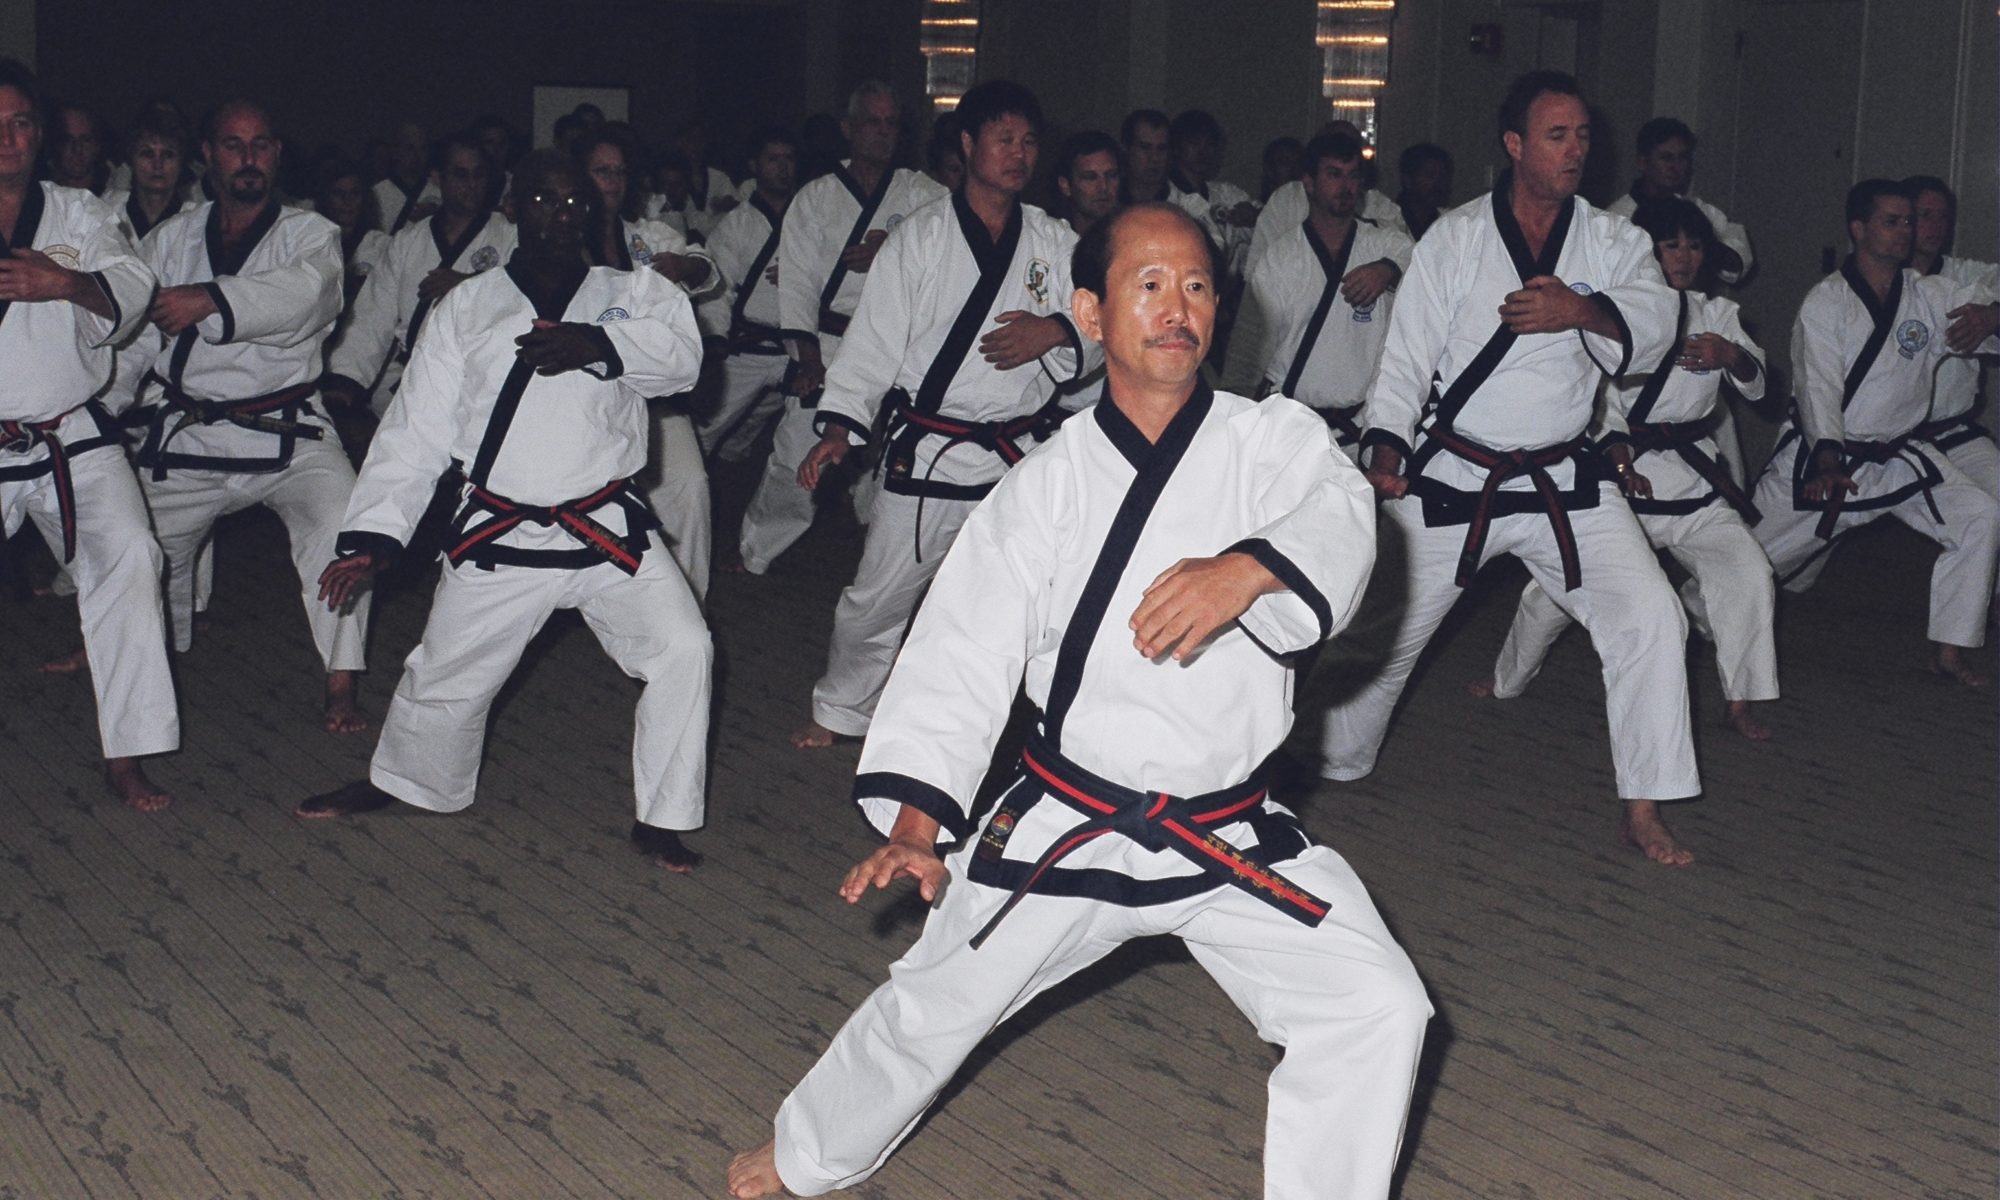 Region 2 United States Soo Bahk Do Moo Duk Kwan Federation